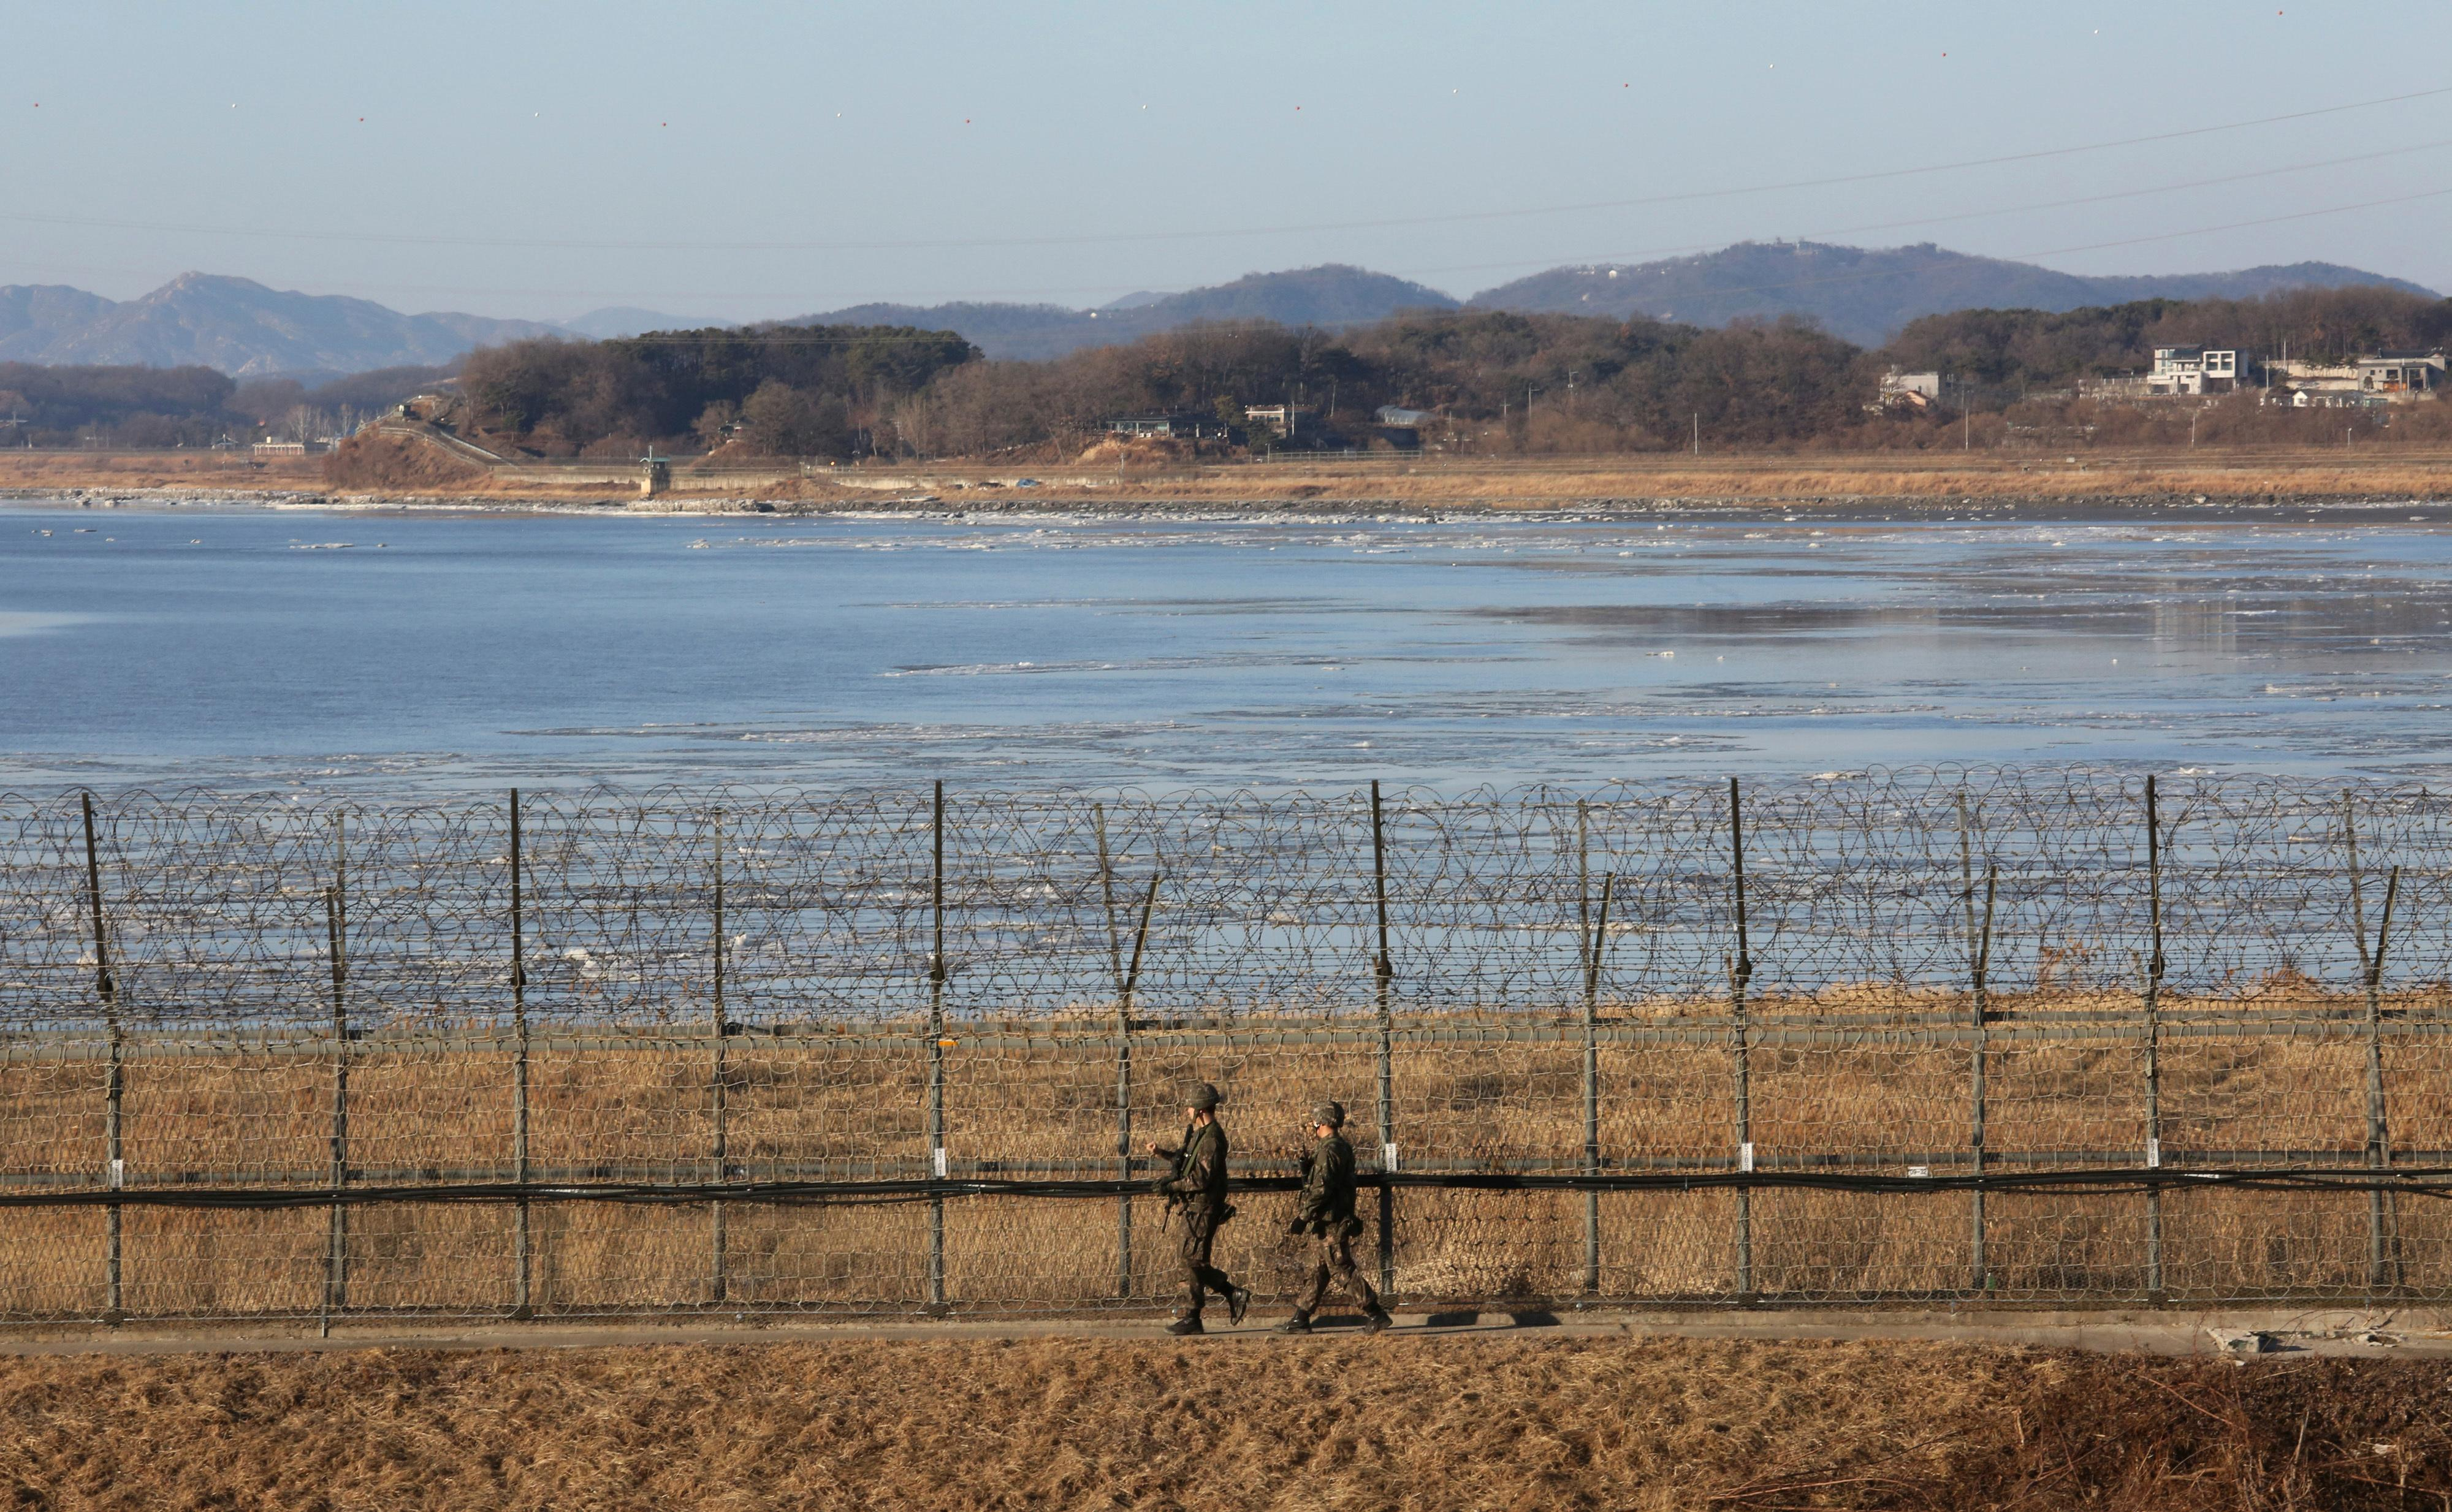 "South Korean army soldiers patrol along the barbed-wire fence in Paju, South Korea, near the border with North Korea Monday, Dec. 25, 2017. North Korea on Sunday called the latest U.N. sanctions to target the country ""an act of war"" that violates its sovereignty, and said it is a ""pipe dream"" for the United States to think it will give up its nuclear weapons. (AP Photo/Ahn Young-joon)"